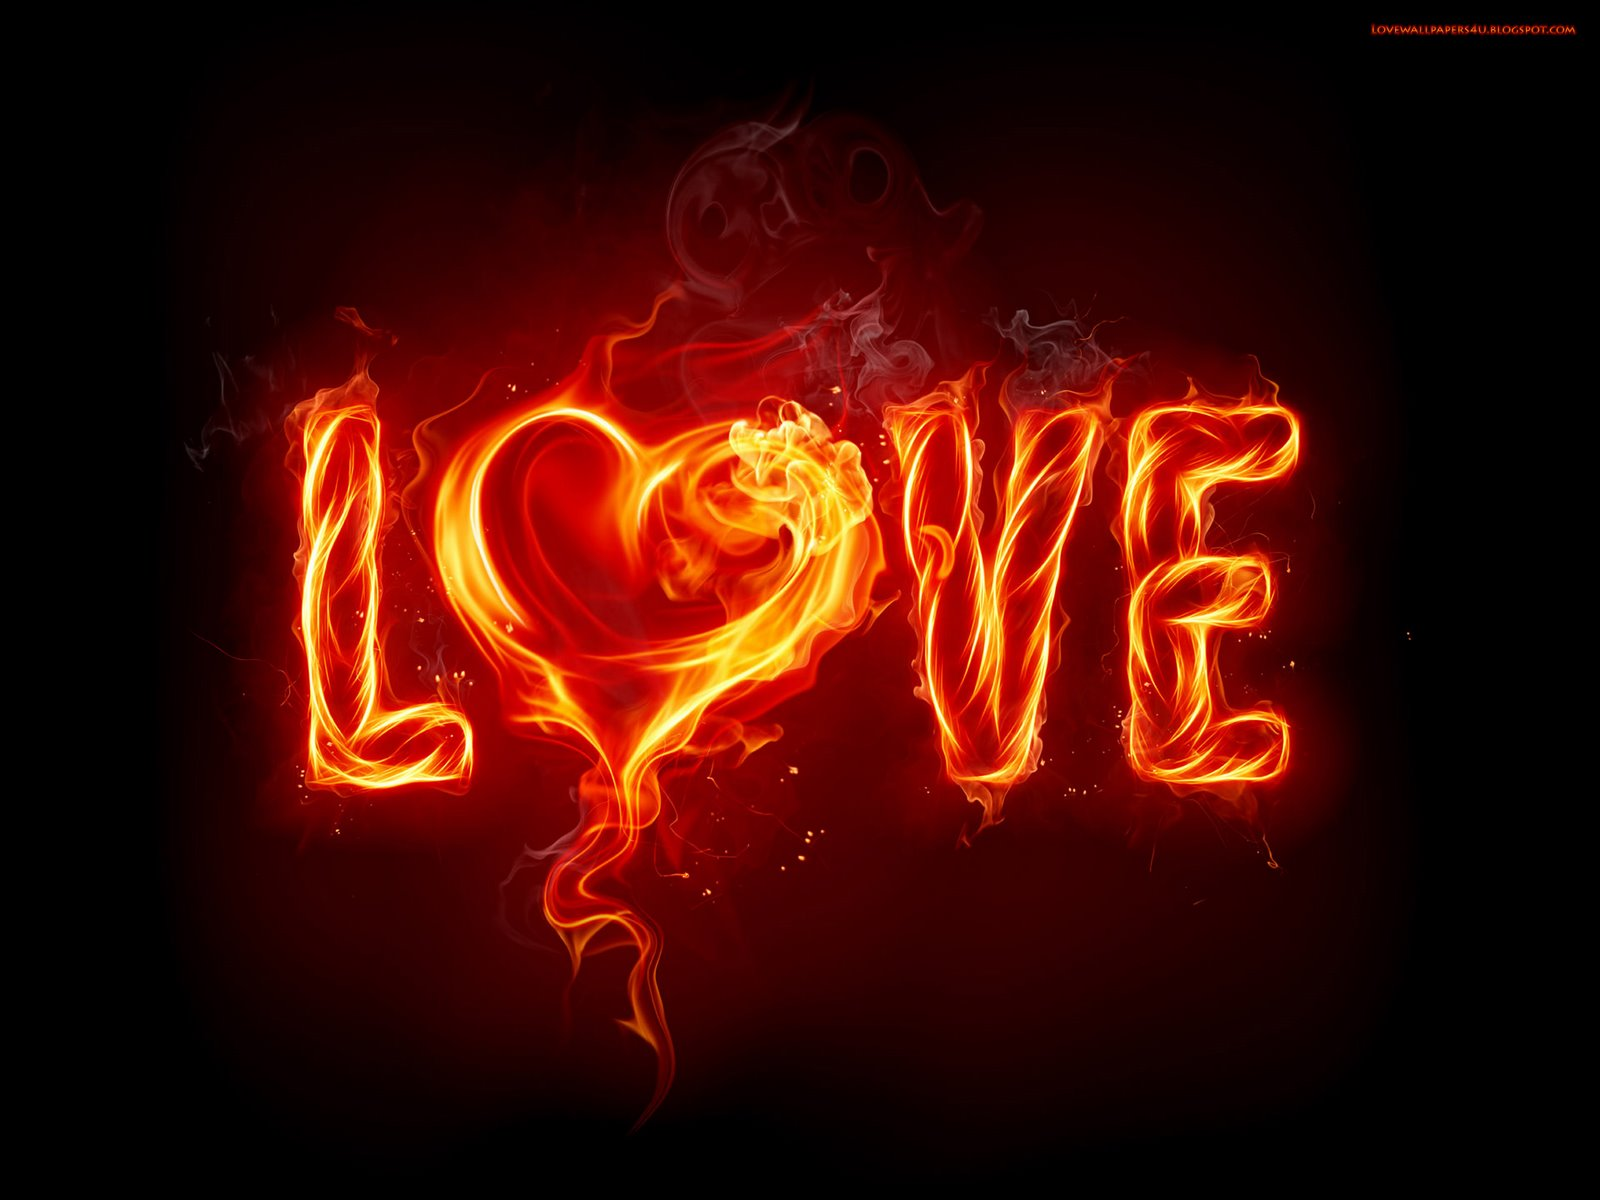 Love Wallpapers Blogspot : ysdgiasuhv: Free Love Wallpapers